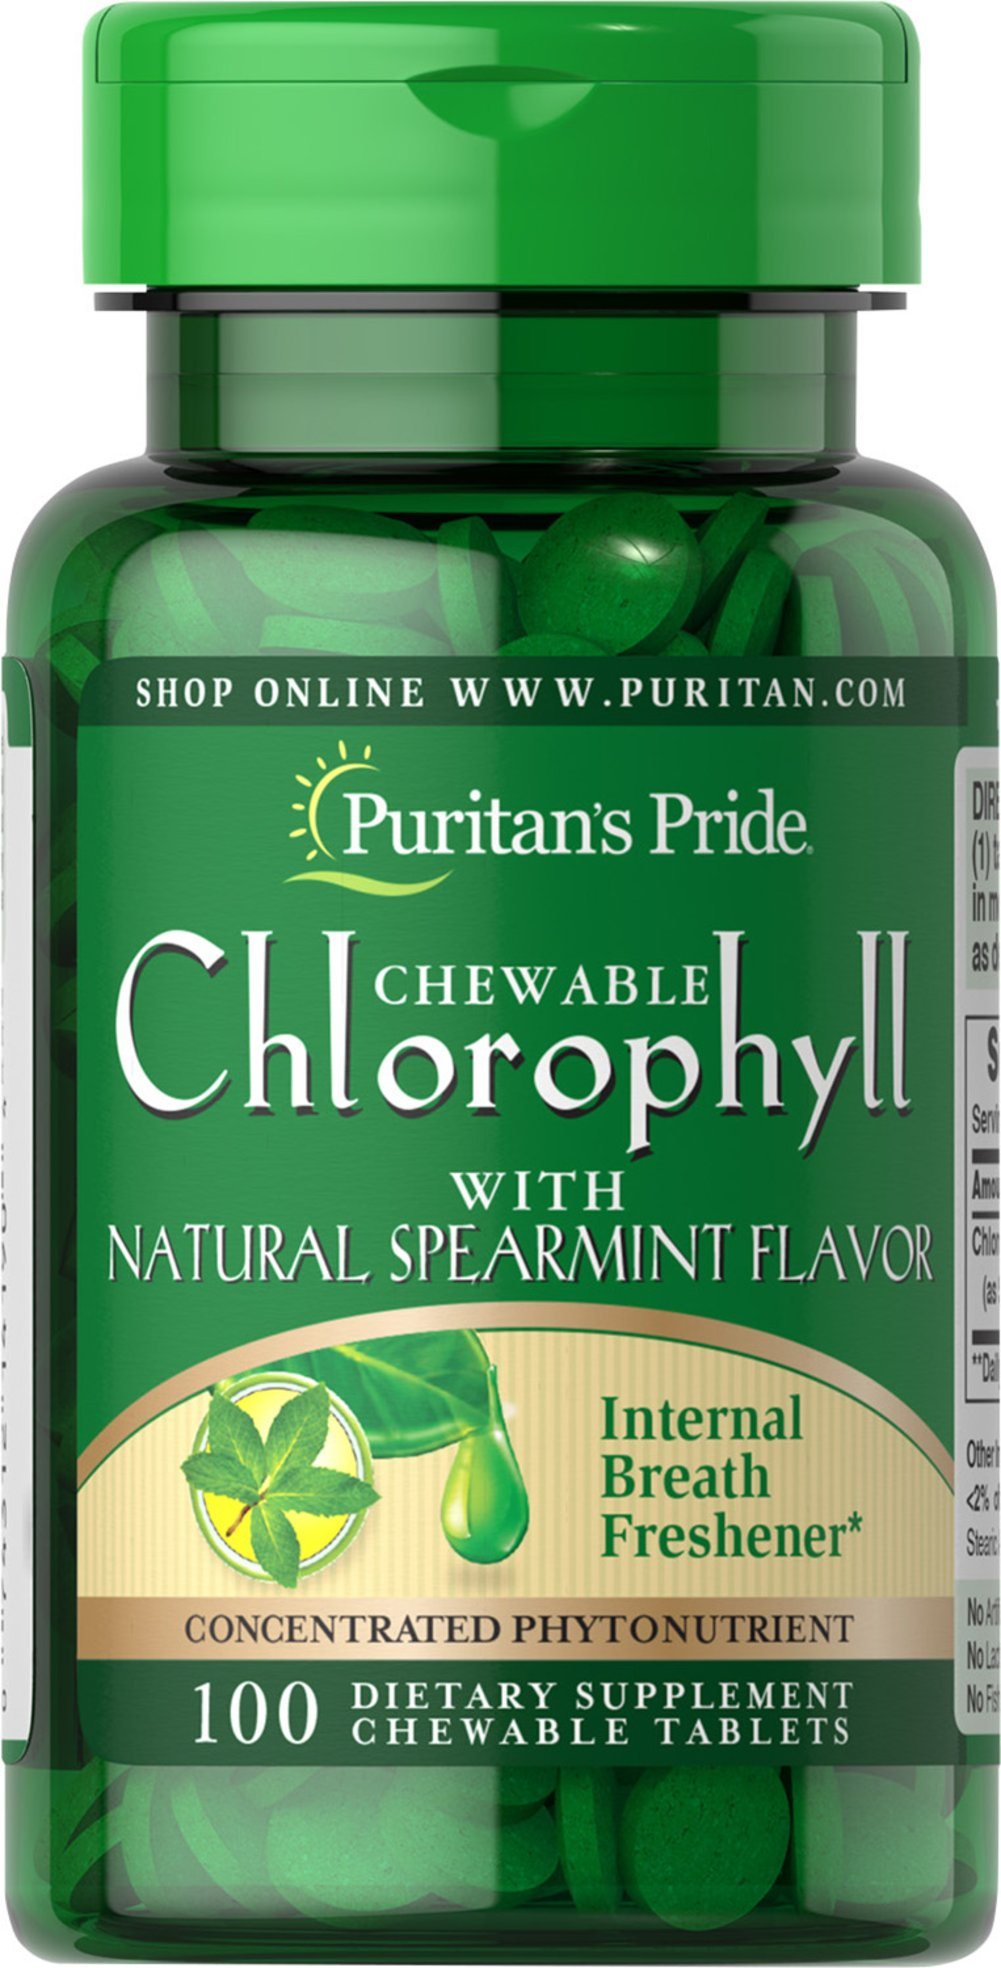 Chewable Chlorophyll with Natural Spearmint Flavor  100 Chewables 3 mg $4.99